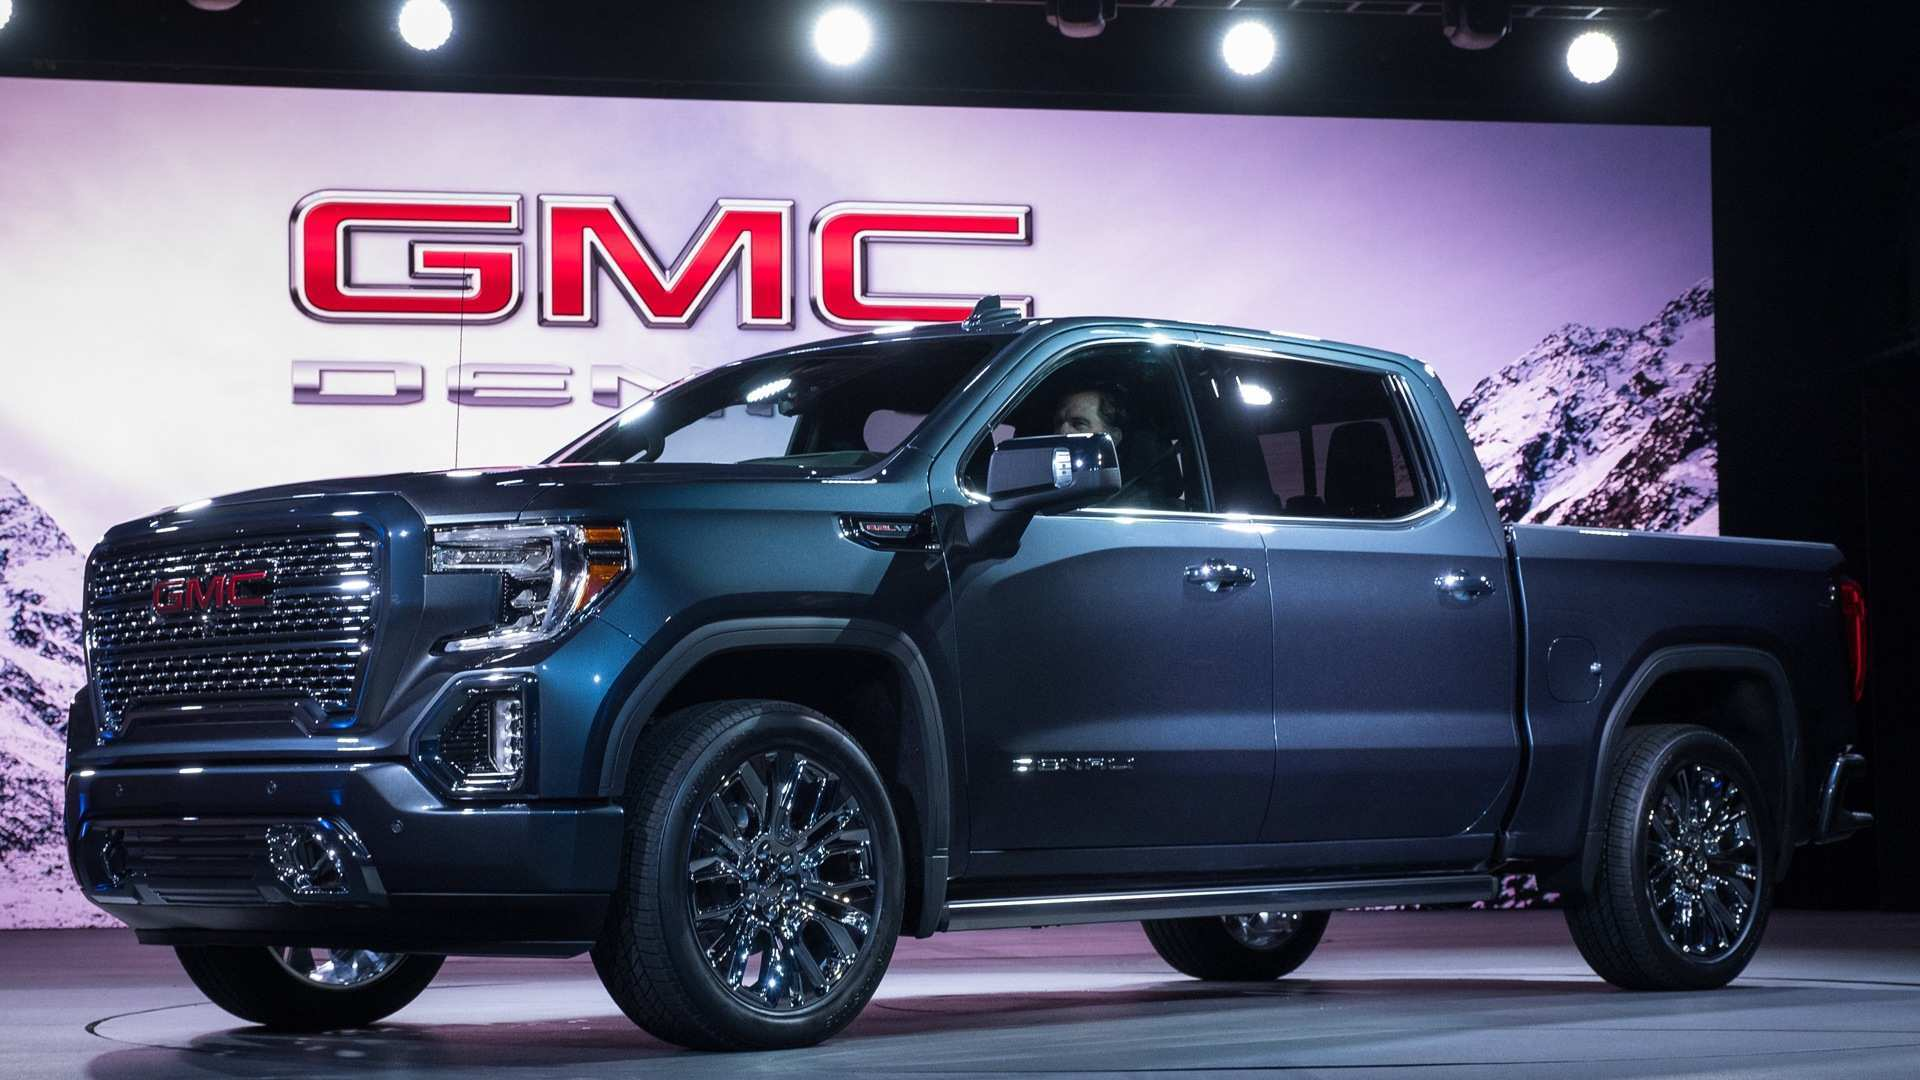 40 Best 2019 Gmc Sierra Denali 1500 Hd Concept And Review